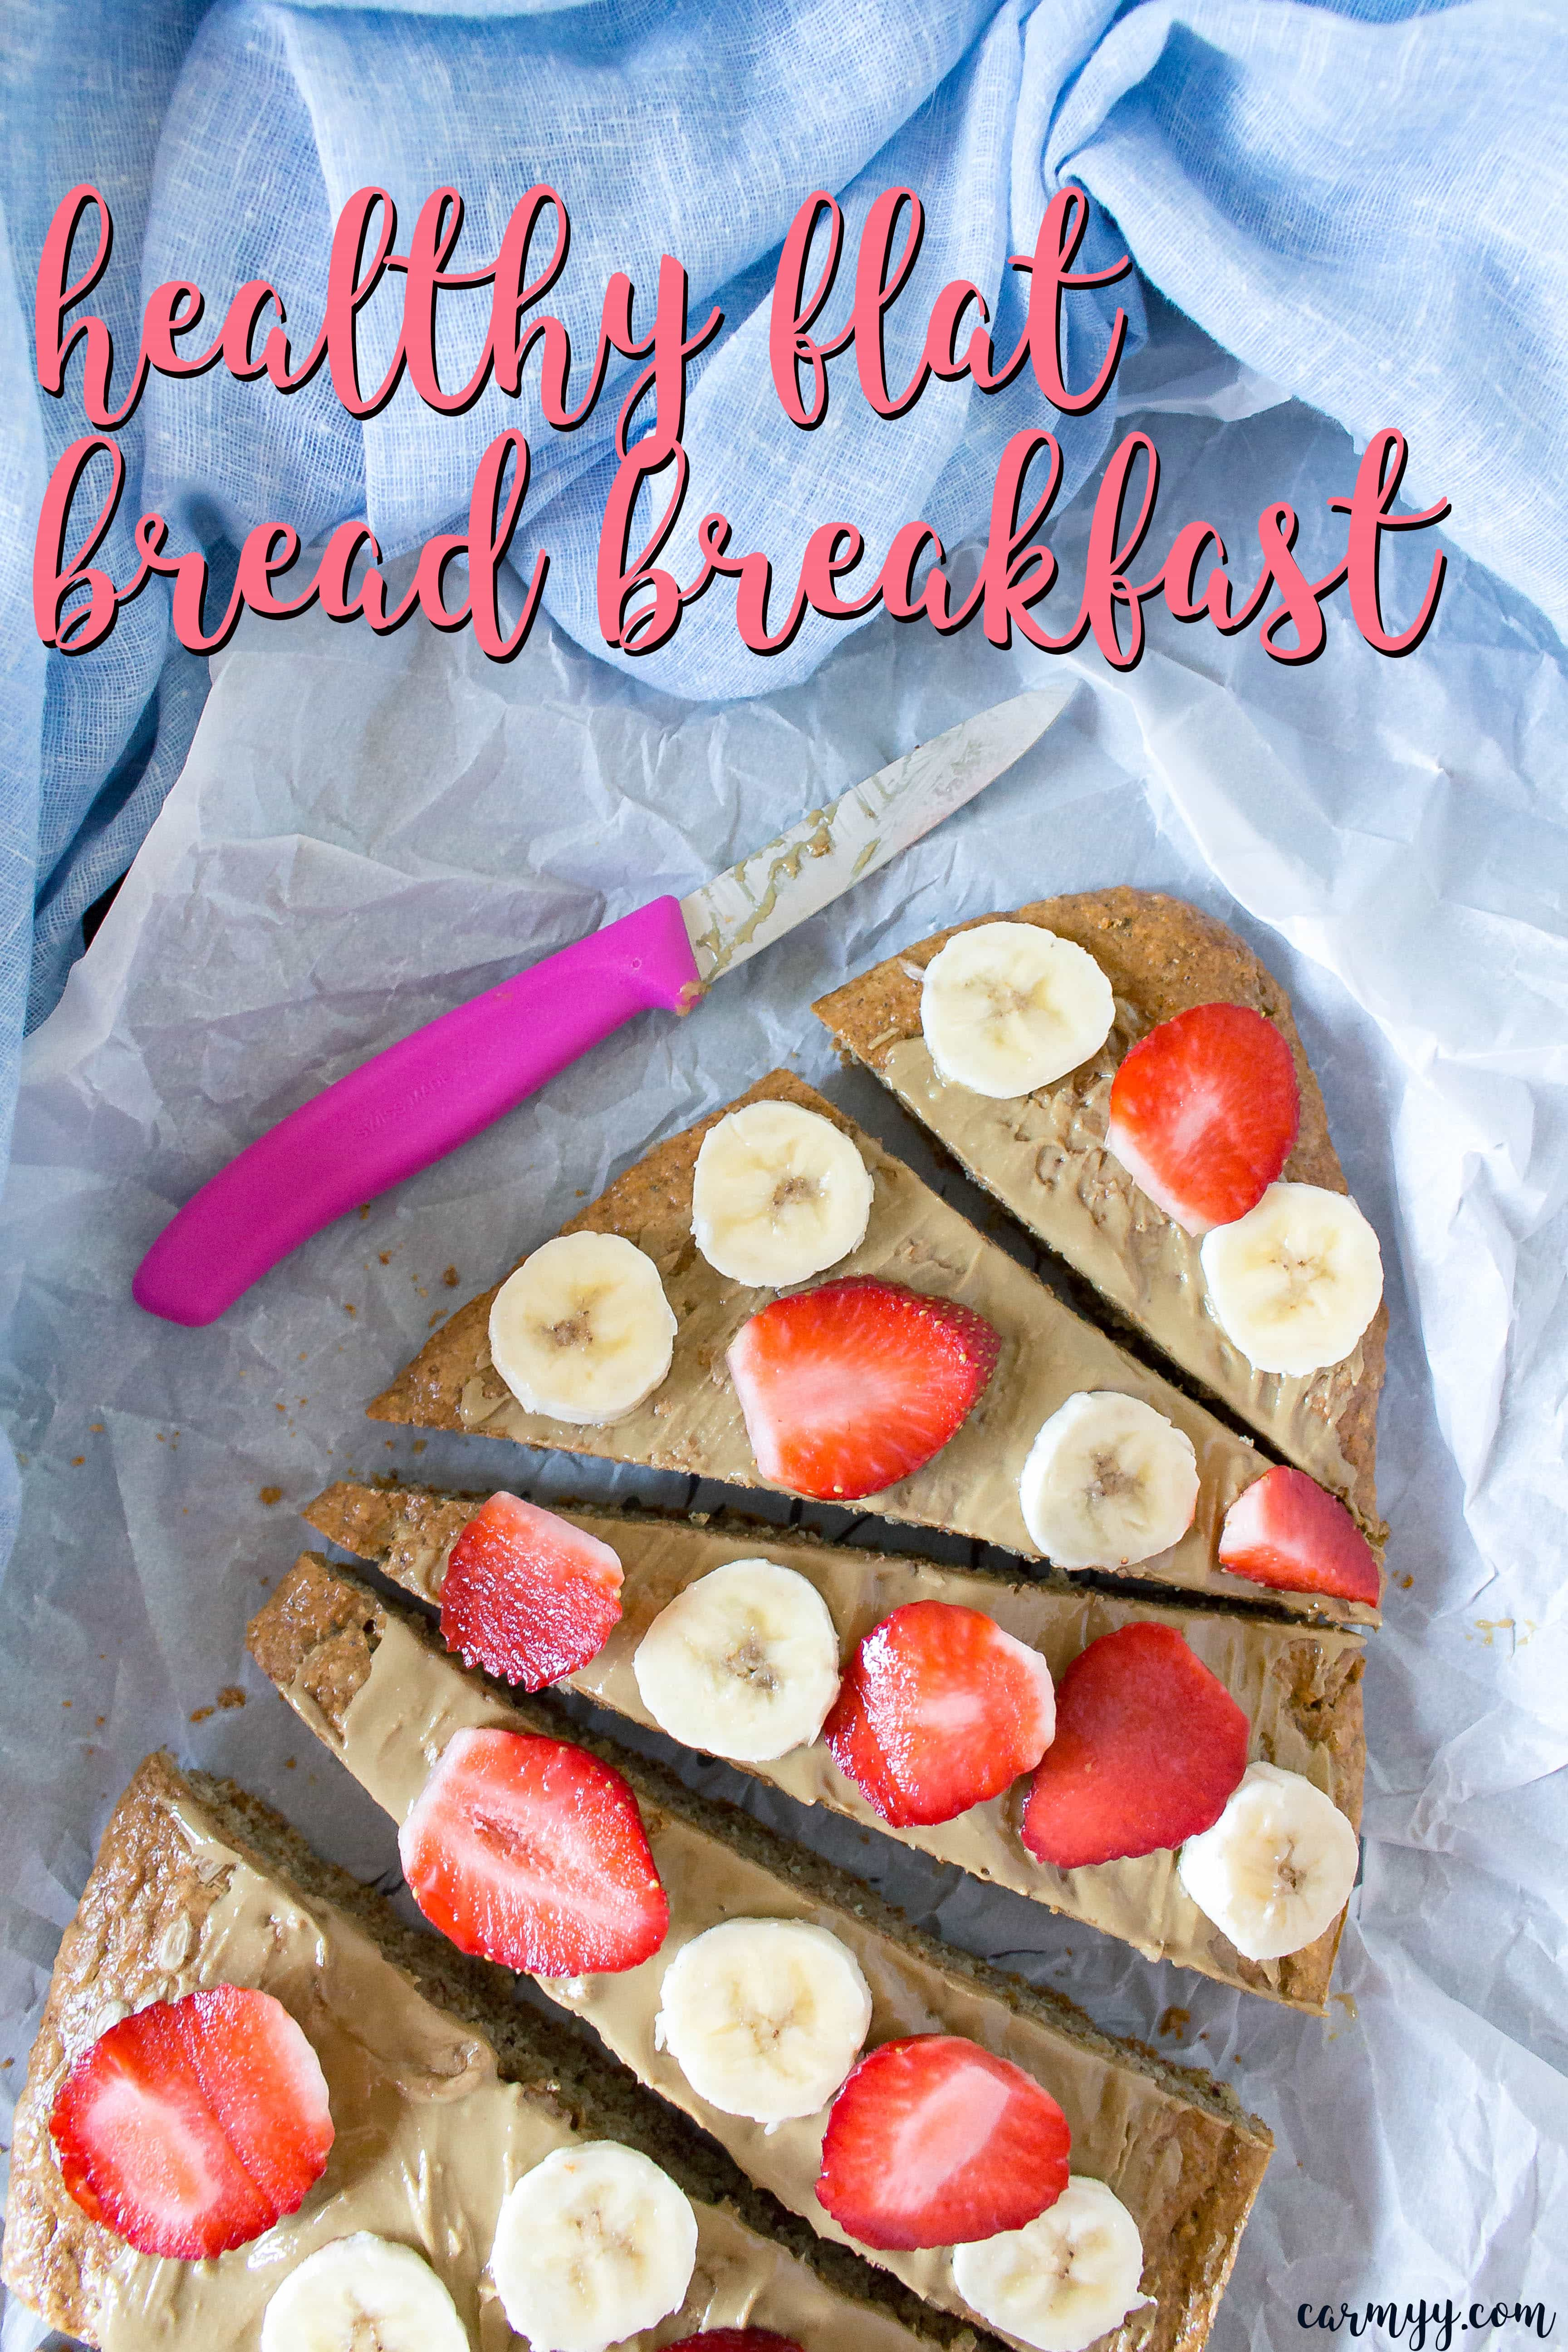 This healthy flat bread breakfast is the best way to start your day off right! Top it off with your favourite fruit and nut butter!